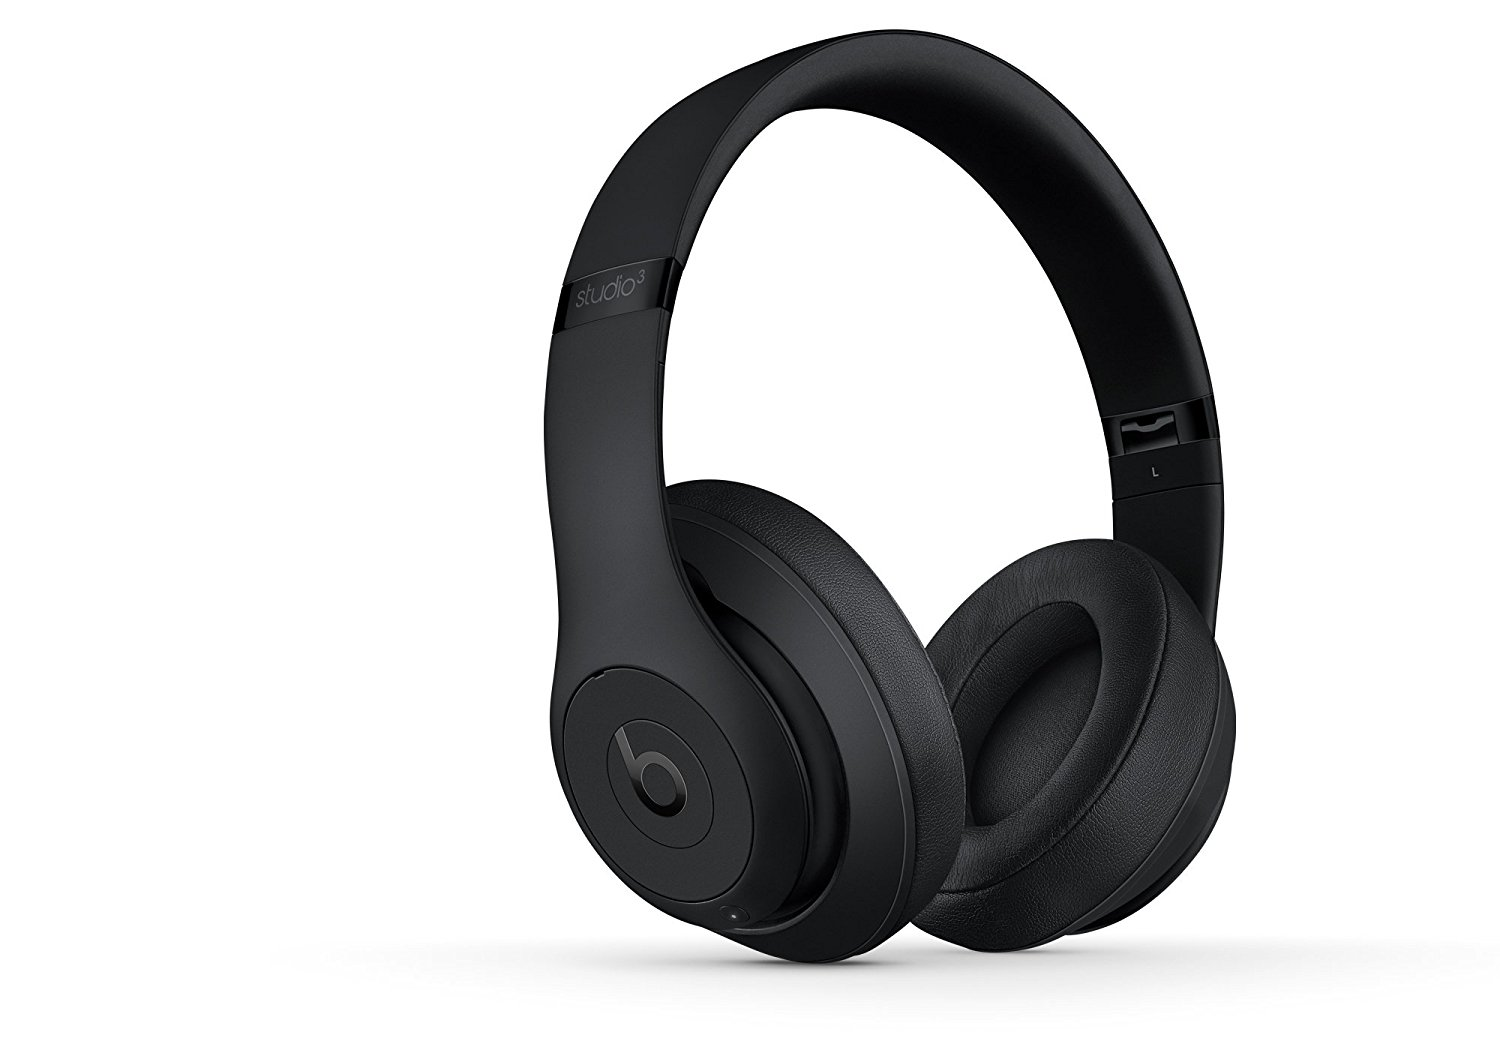 Beats Studio3 Wireless Headphones - Matte Black  Features the iconic Beats sound with Dual-Mode Adaptive Noise Canceling, plus the added benefit of wireless listening.Pair and Play with your Bluetooth device with 30ft range. 12-hour rechargeable battery Fuel Gauge. Soft ear cups have an ergonomic bellow that creates a flexible custom fit, so you can keep your music all to yourself. Headphones come with a RemoteTalk cable, a USB 2.0 charging cable, a hard shell carrying case, quick start guide, and warranty card. Refer to the PDF attached below in Technical Specification for User Manual $329.99